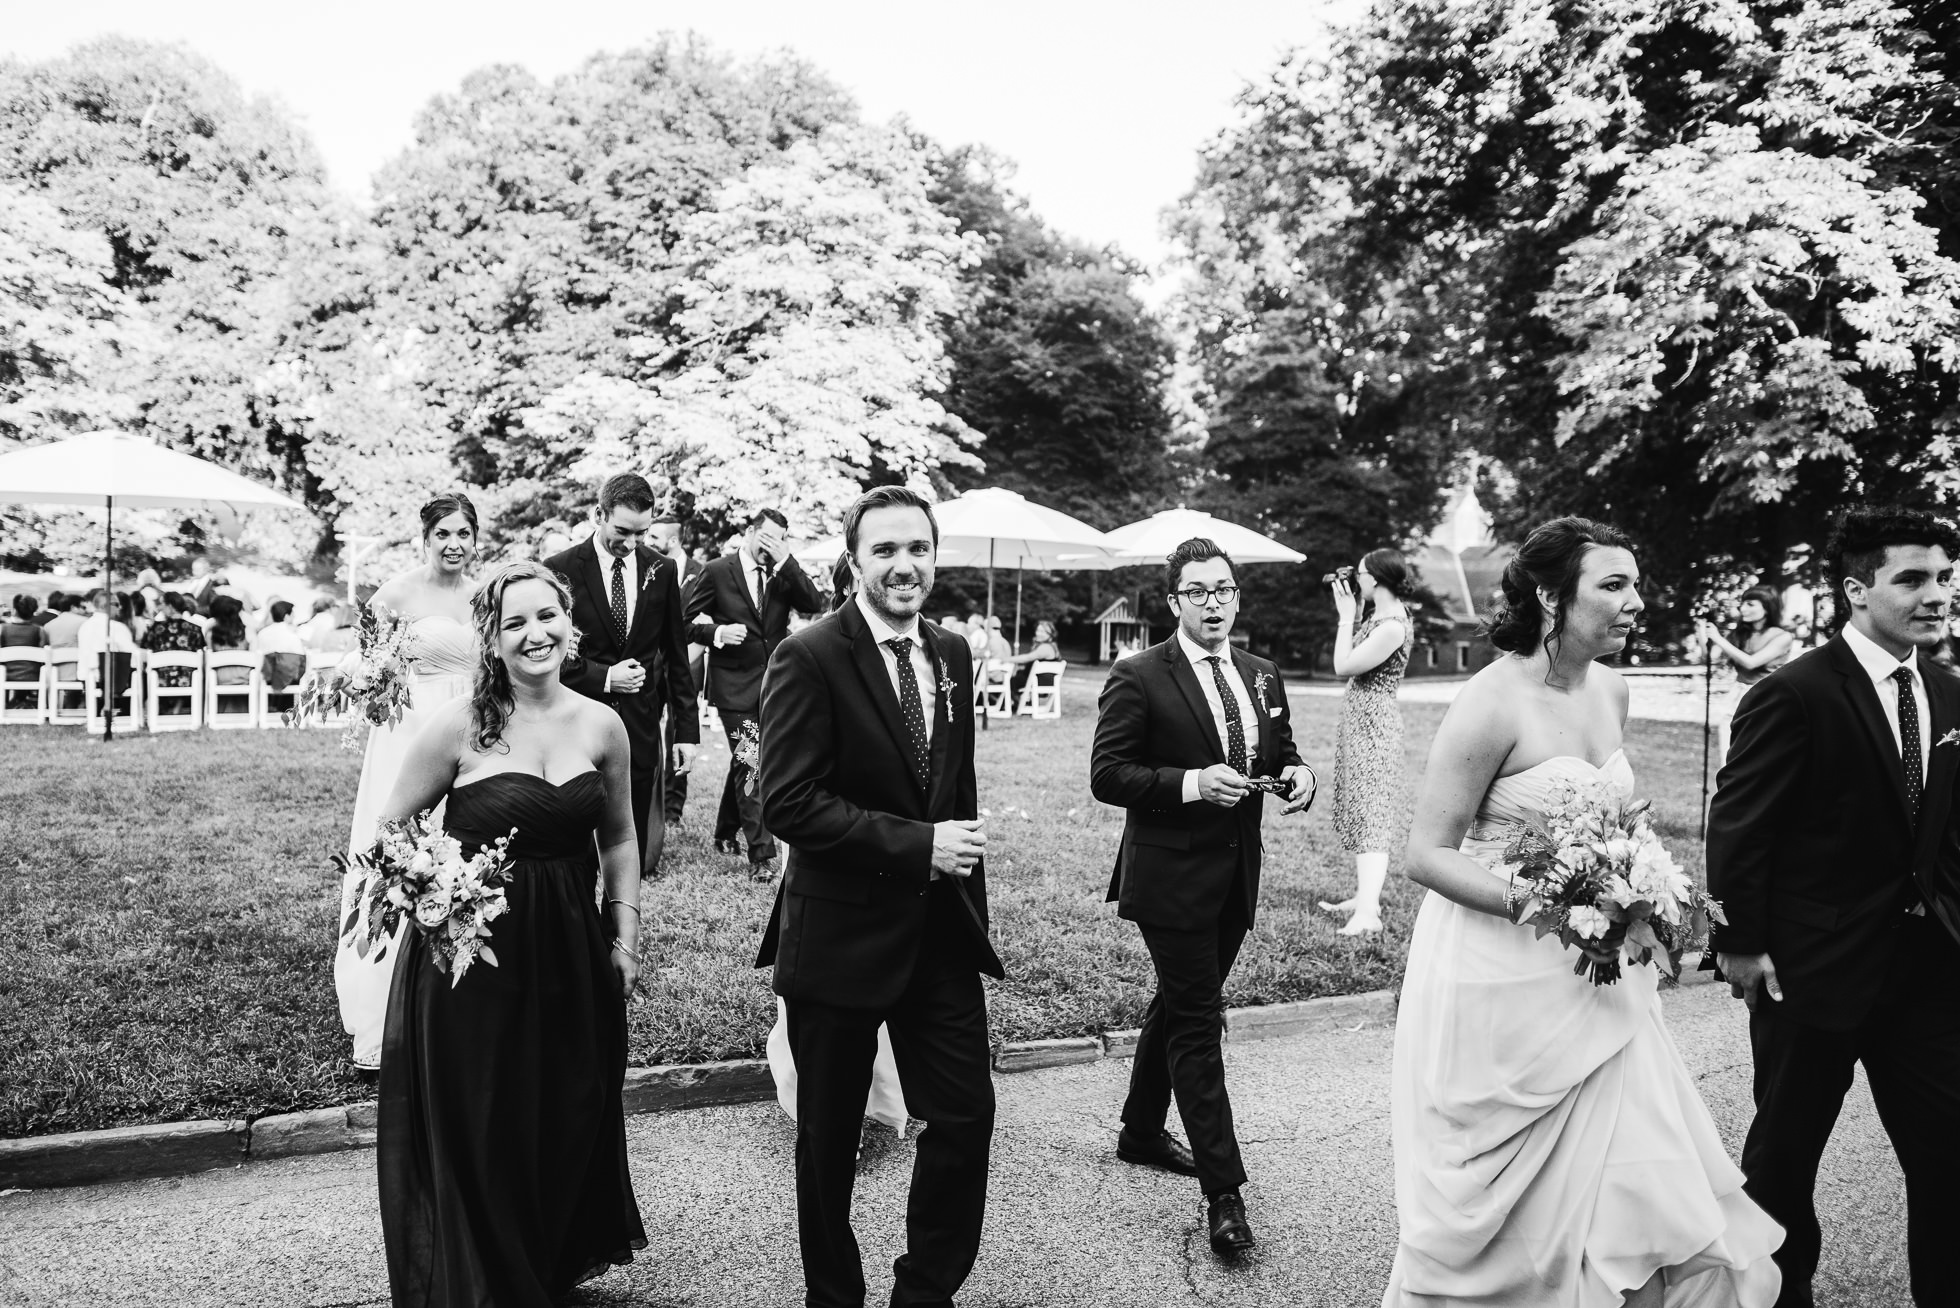 wedding party exit at wedding ceremony at lyndhurst castle photographed by traverse the tides